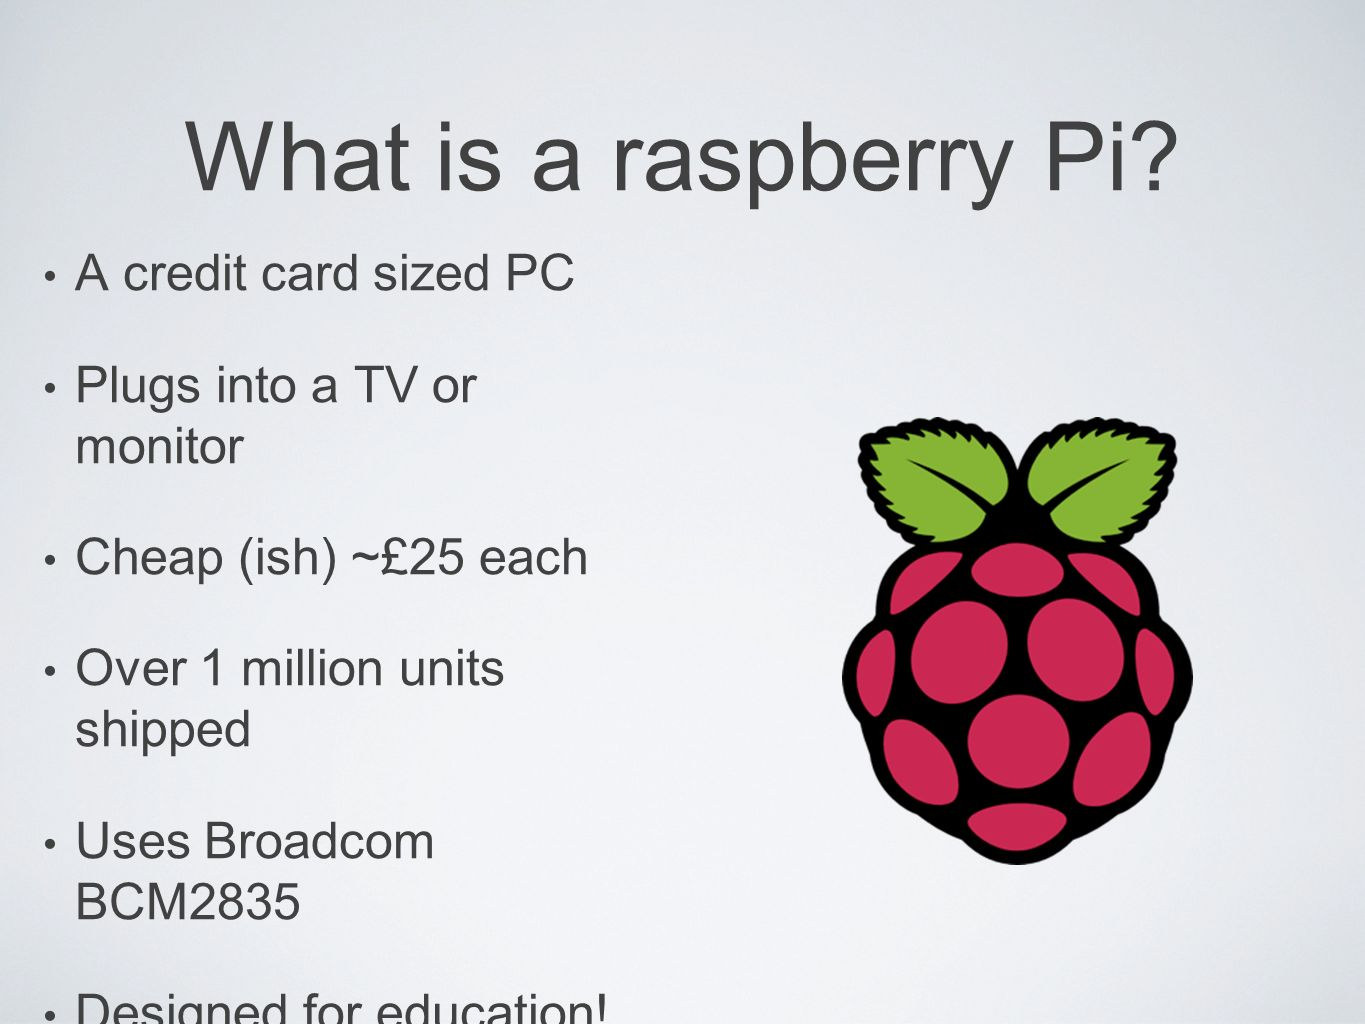 What is a raspberry Pi? A credit card sized PC Plugs into a TV or monitor Cheap (ish) ~£25 each Over 1 million units shipped Uses Broadcom BCM2835 Des